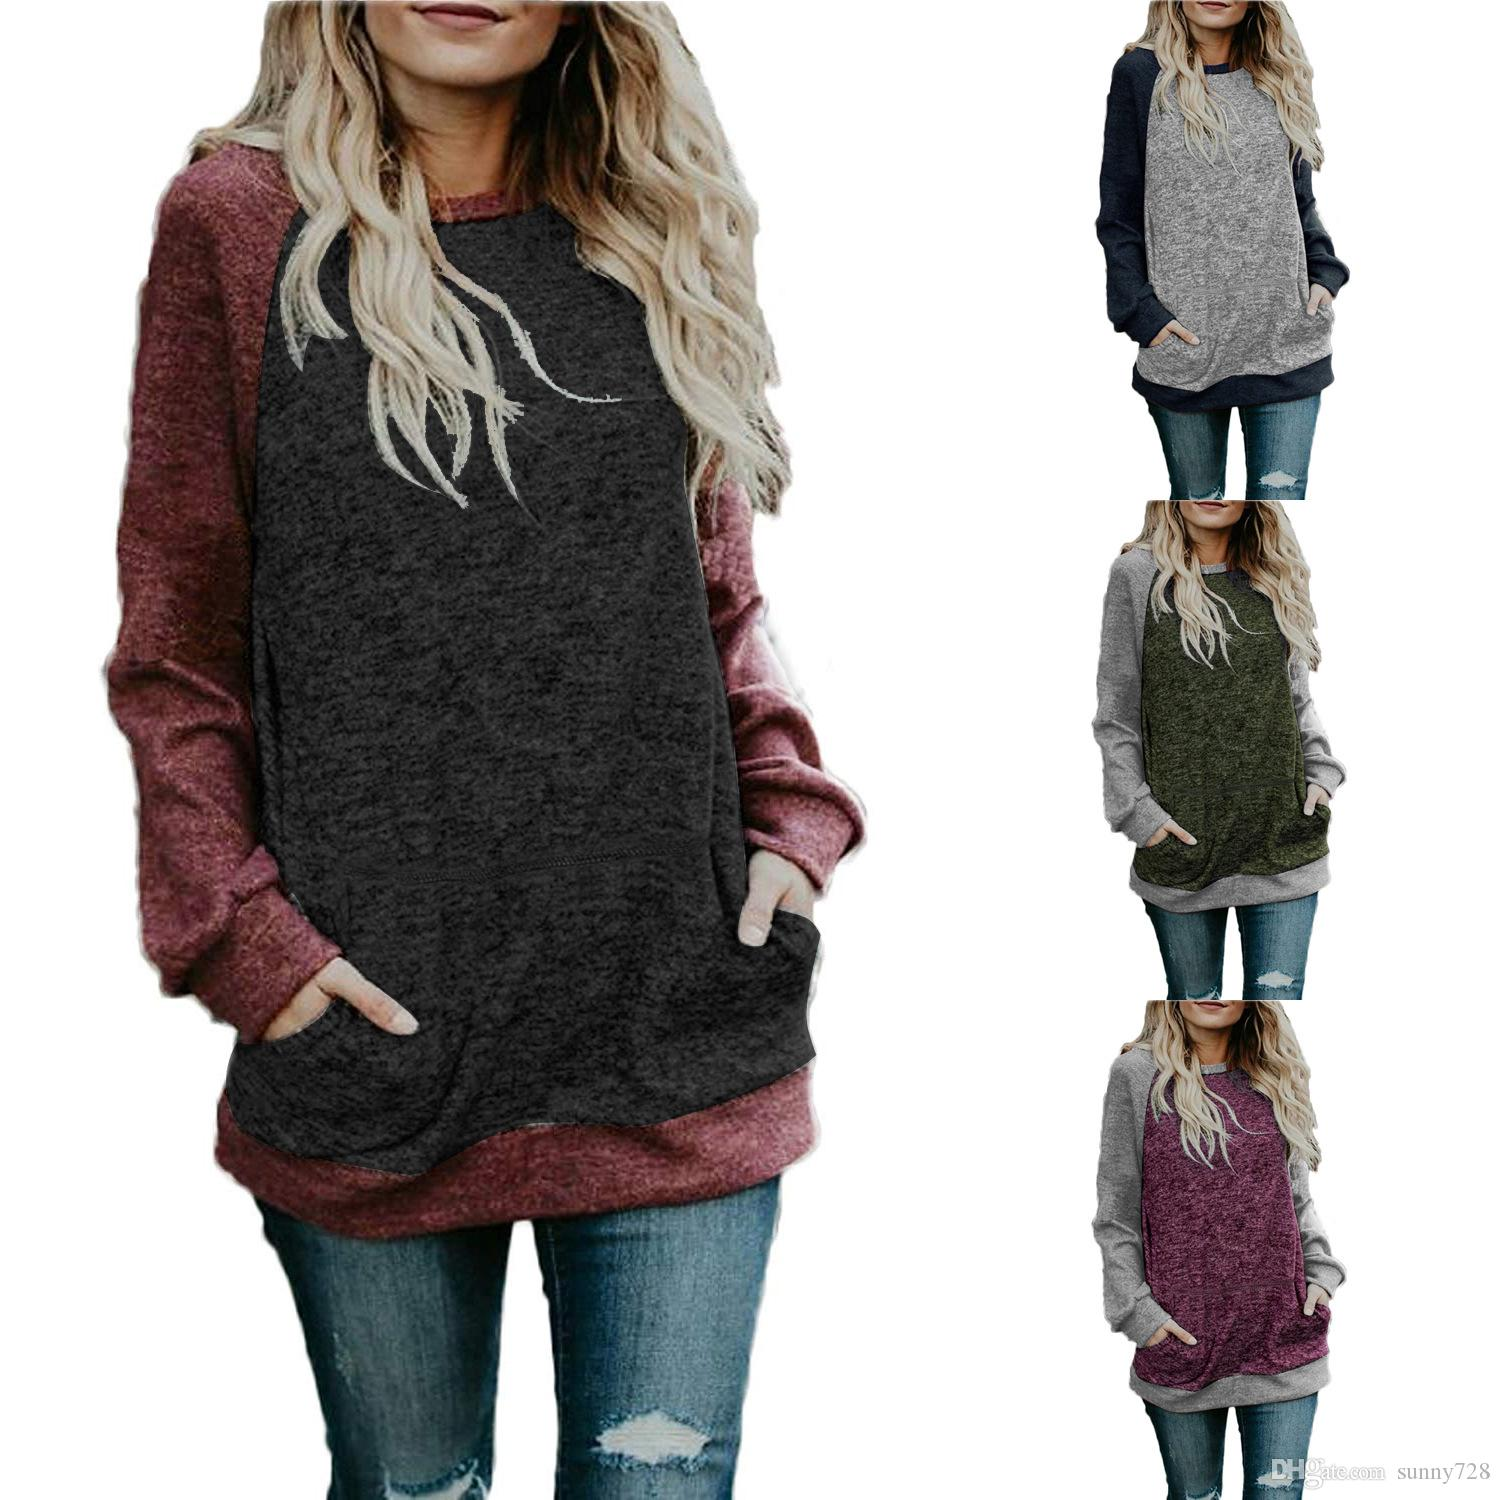 399d4df38b58eb 2018 Autumn Hot Sale Long Sleeves Crew Neck Casual T Shirts with ...